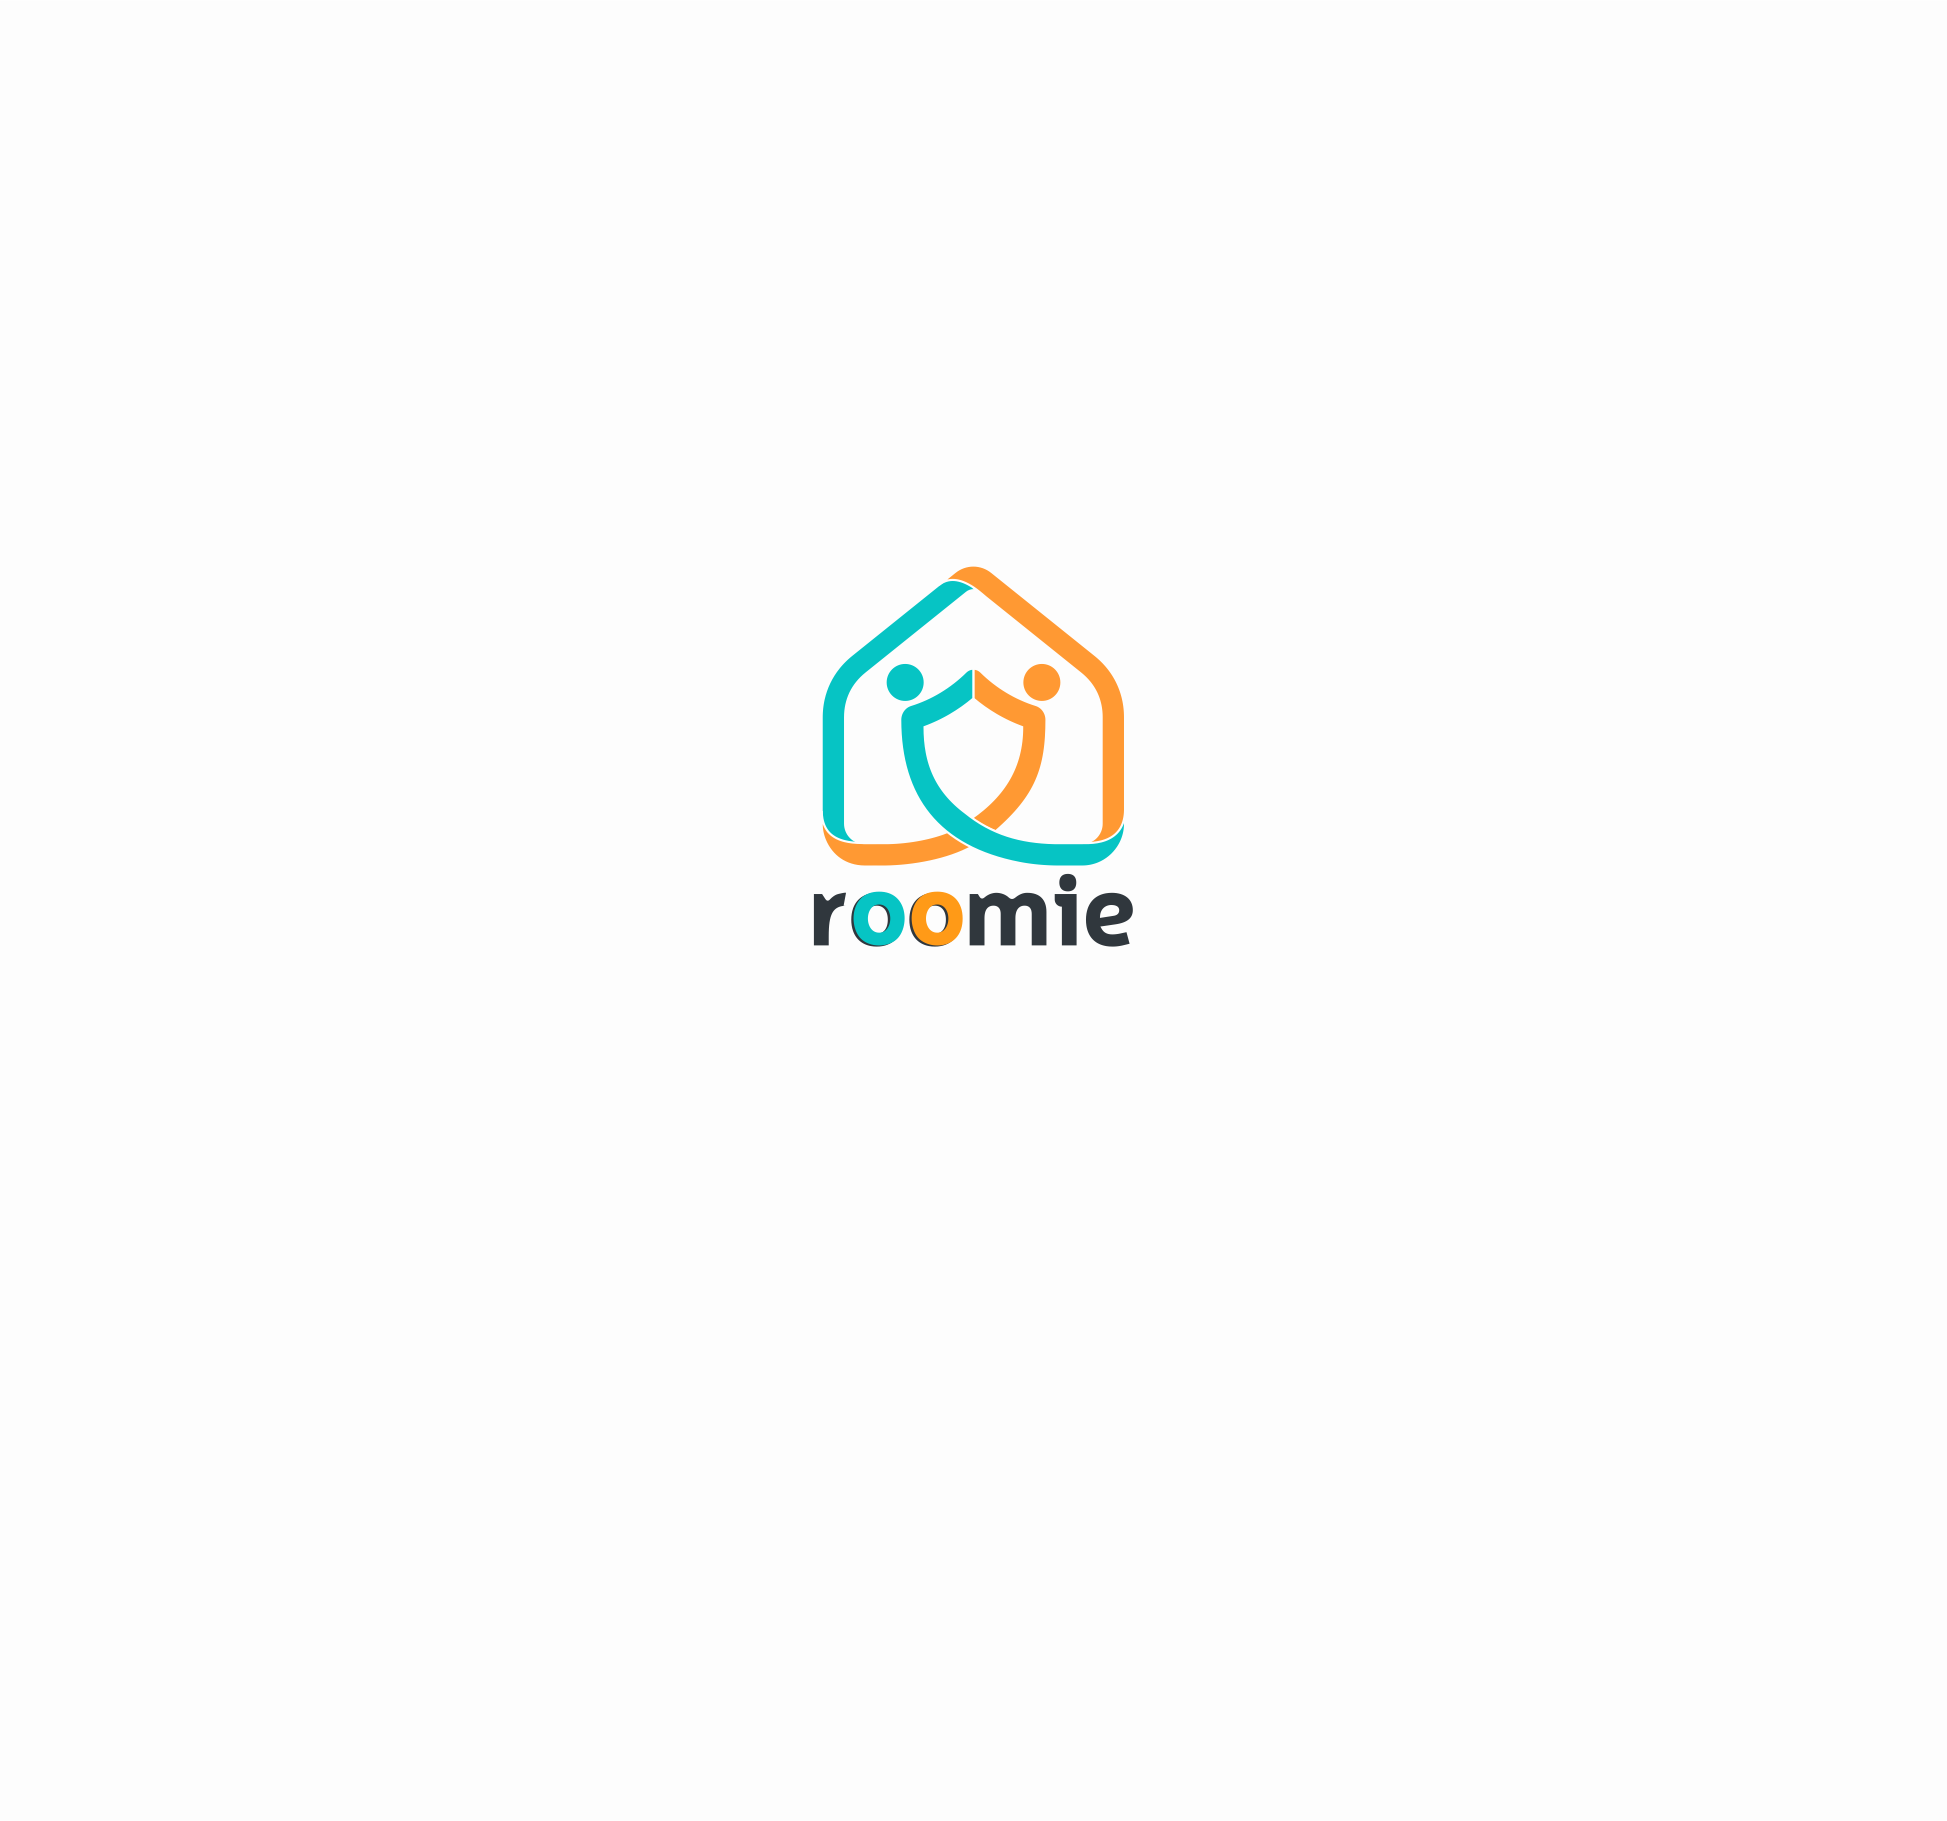 Get a Roomie! Create a logo for Roomie (Housing Community for Exchange Students)